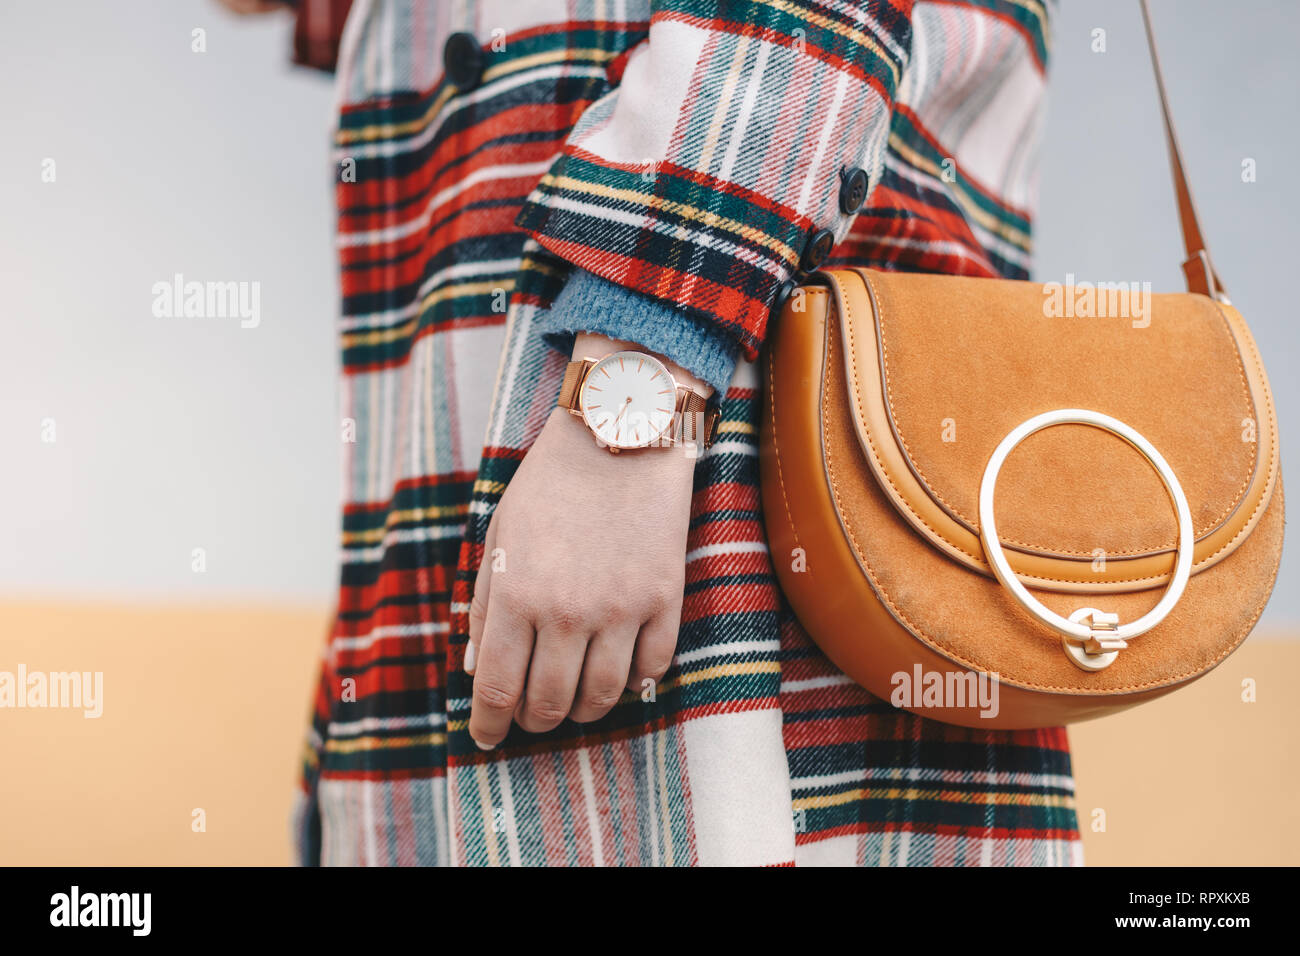 Close up detail of stylish young woman wearing a coat with chequered pattern and a wrist watch while holding a fancy yellow bag in front of a multicol - Stock Image